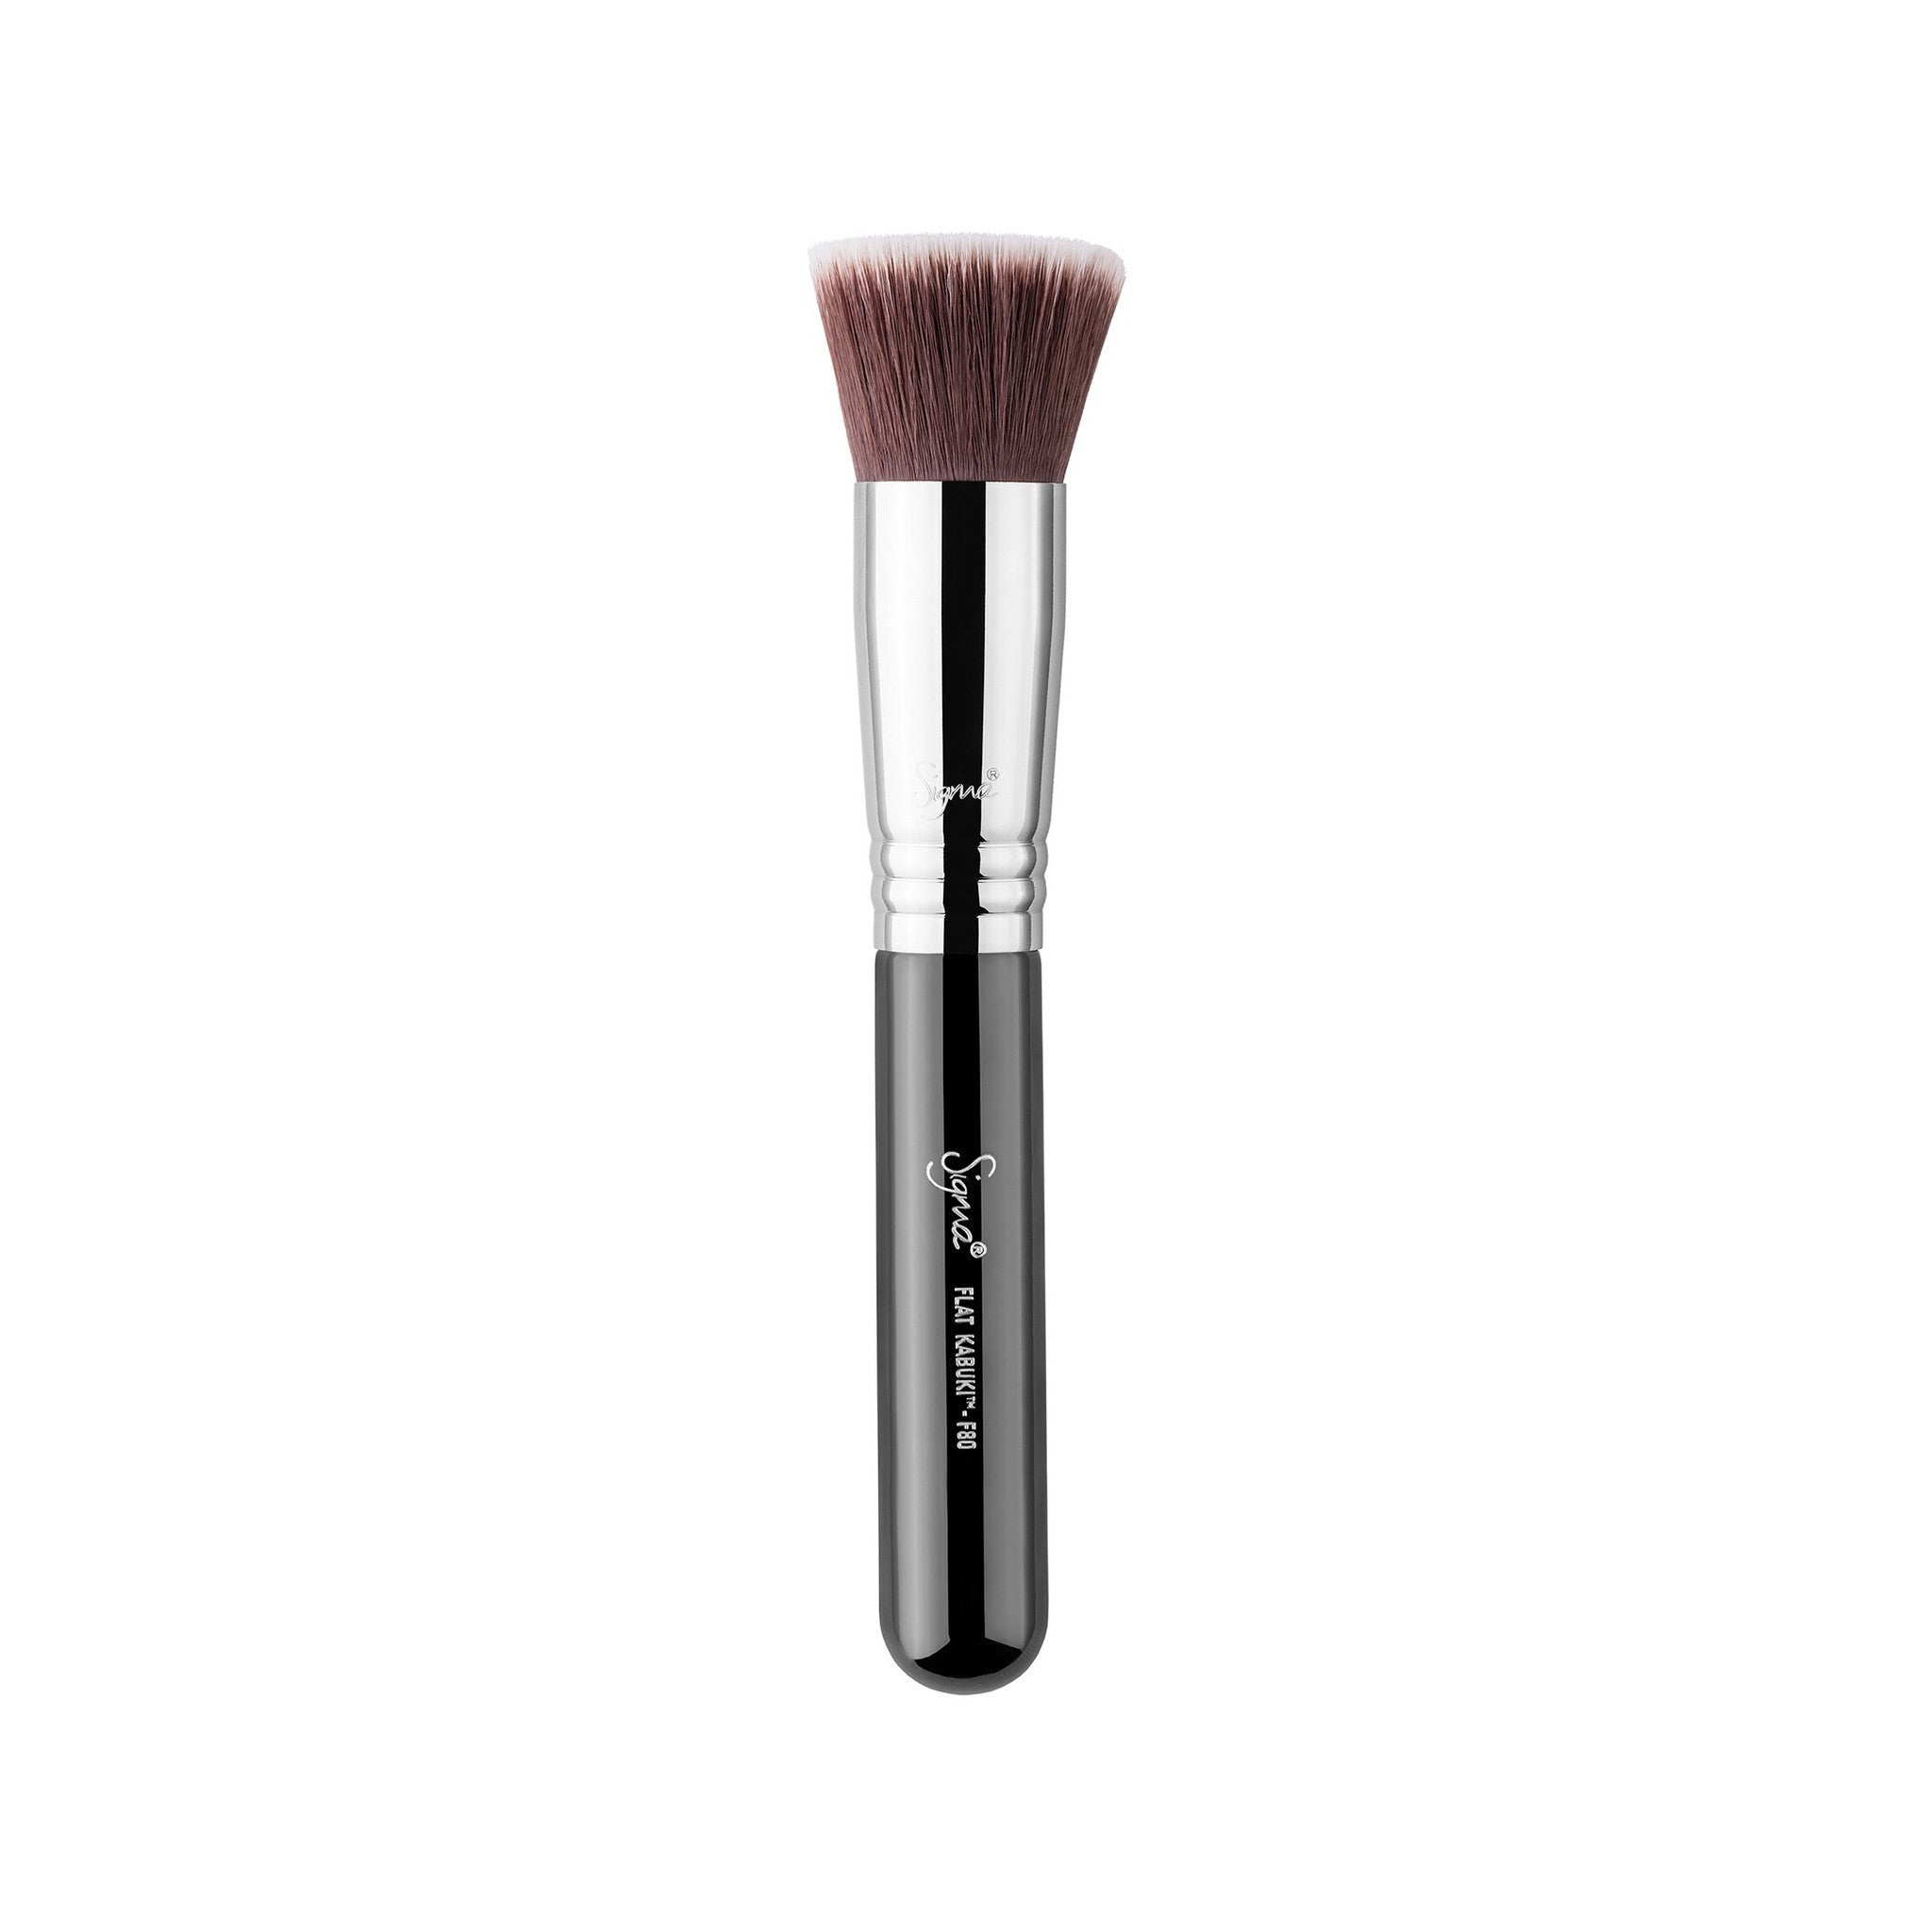 Tools & Brushes - F80 - Flat Kabuki™ Brush